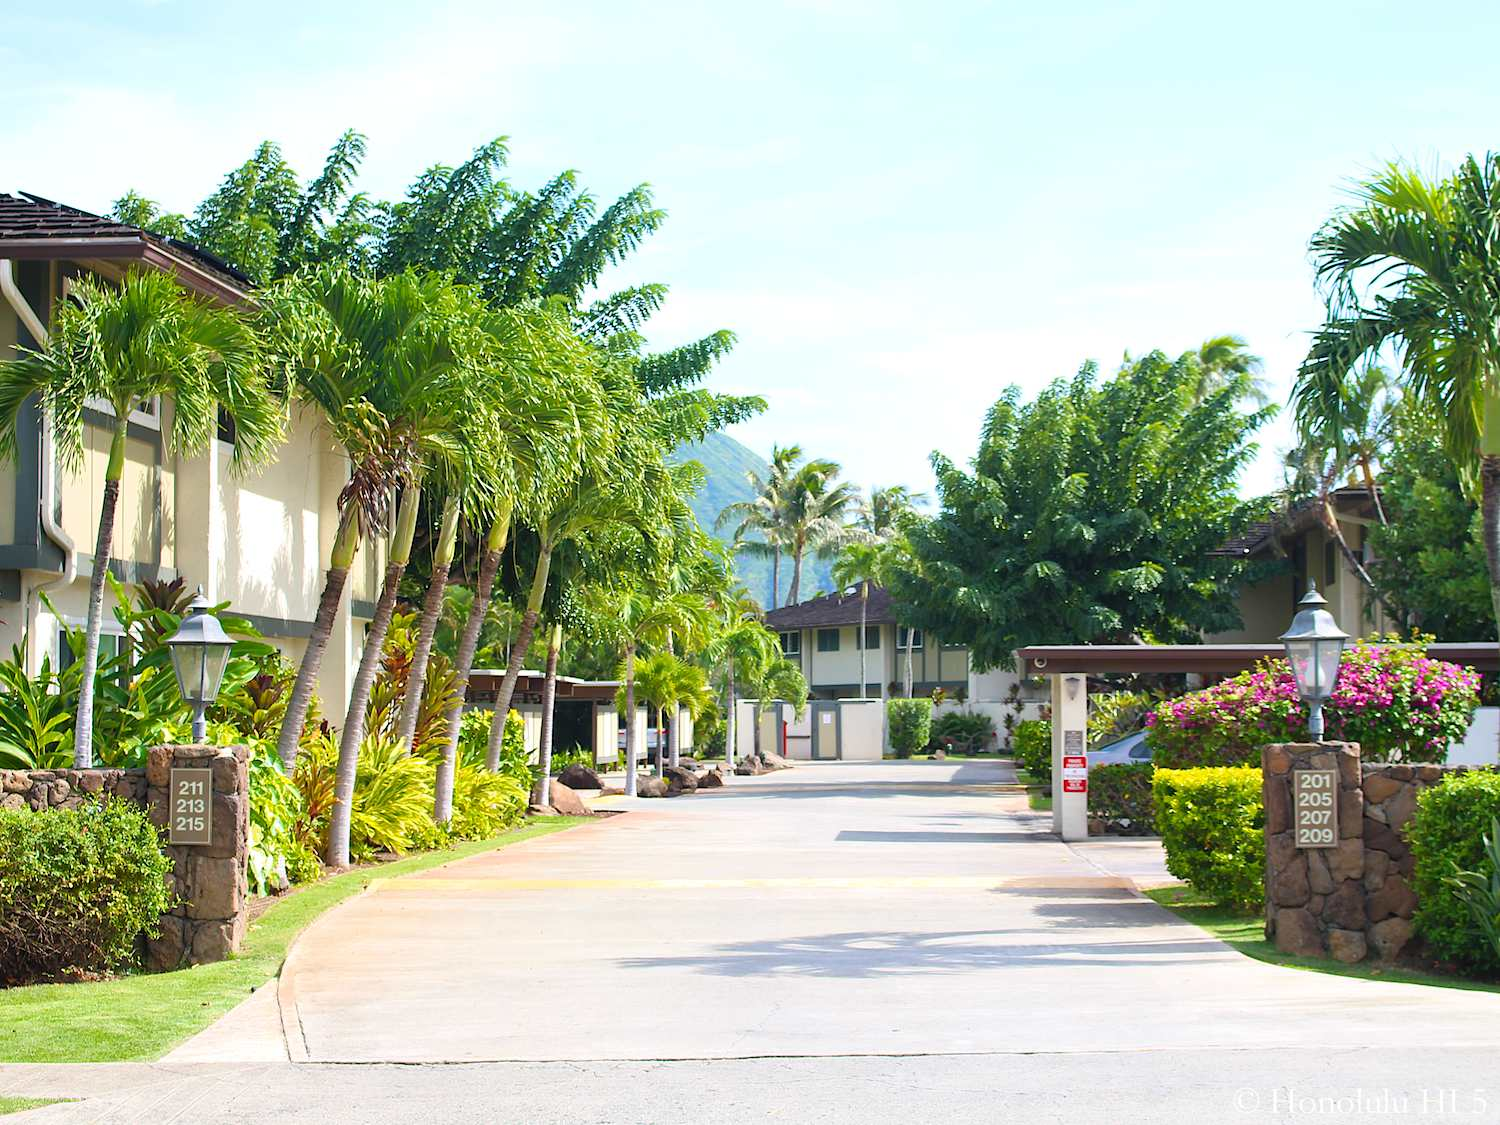 Gateway Peninsula Hawaii Kai Entrance and Townhomes on Both Sides